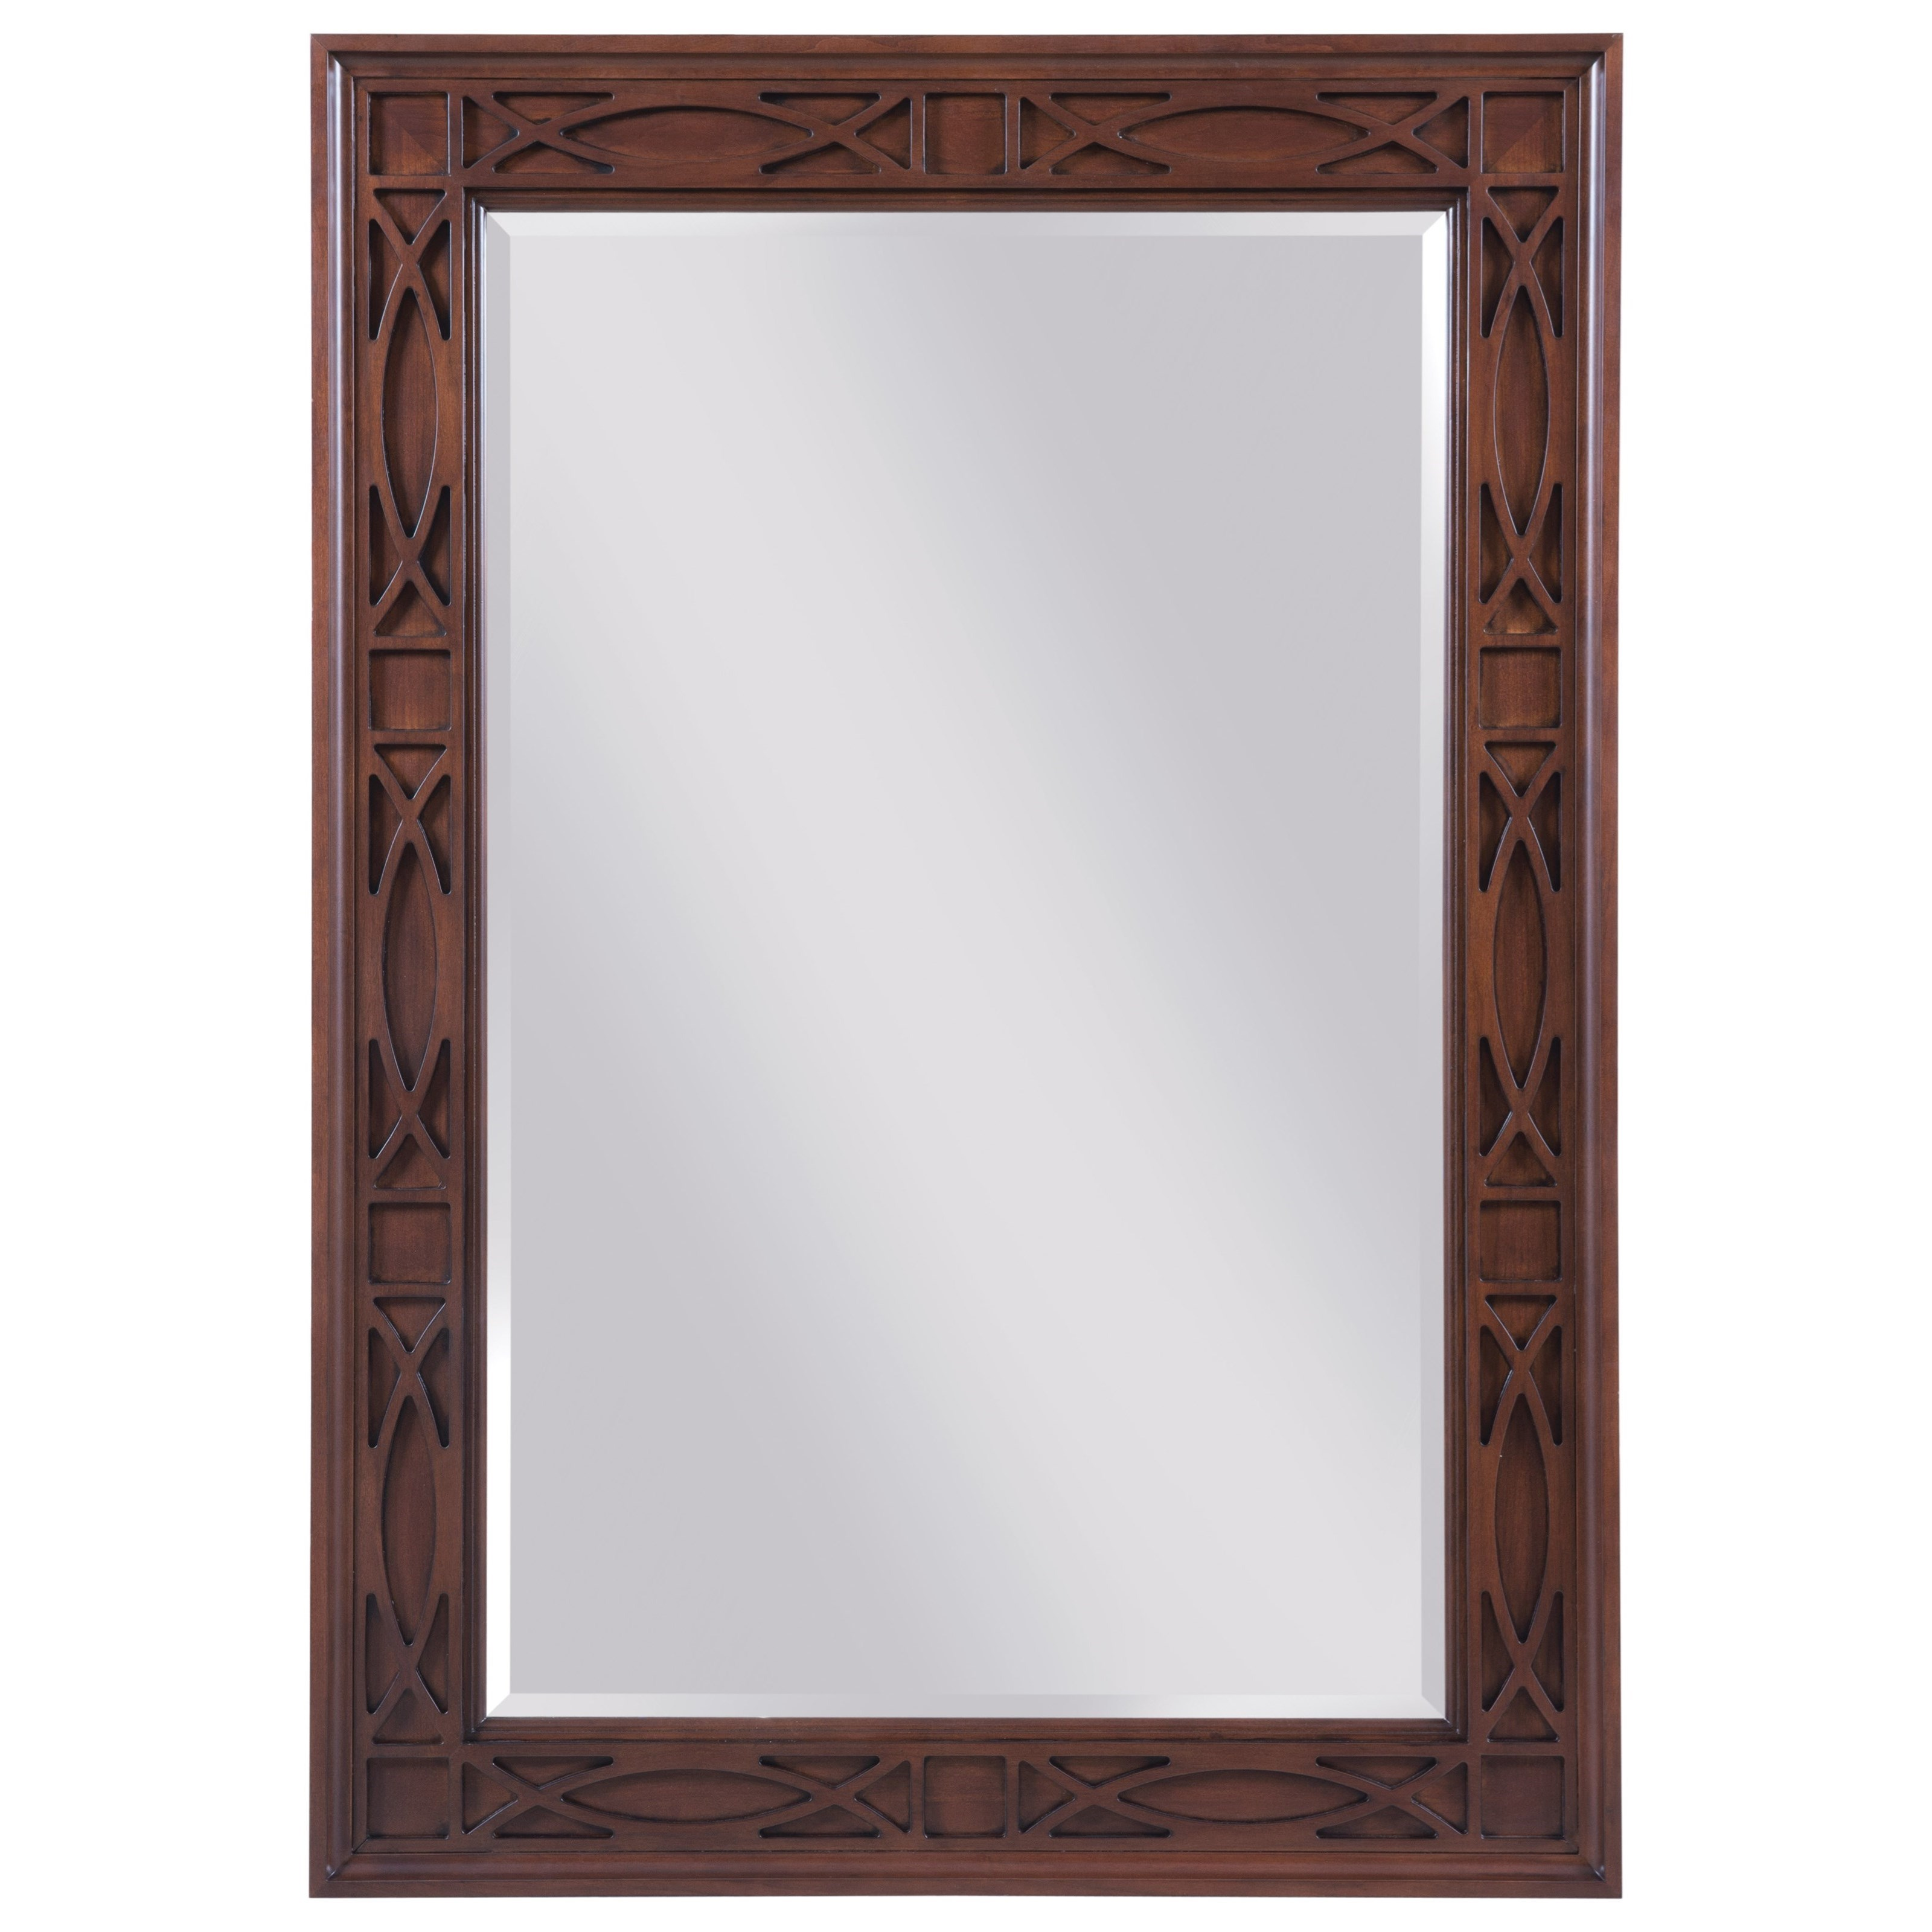 Hadleigh Decorative Mirror by Kincaid Furniture at Johnny Janosik